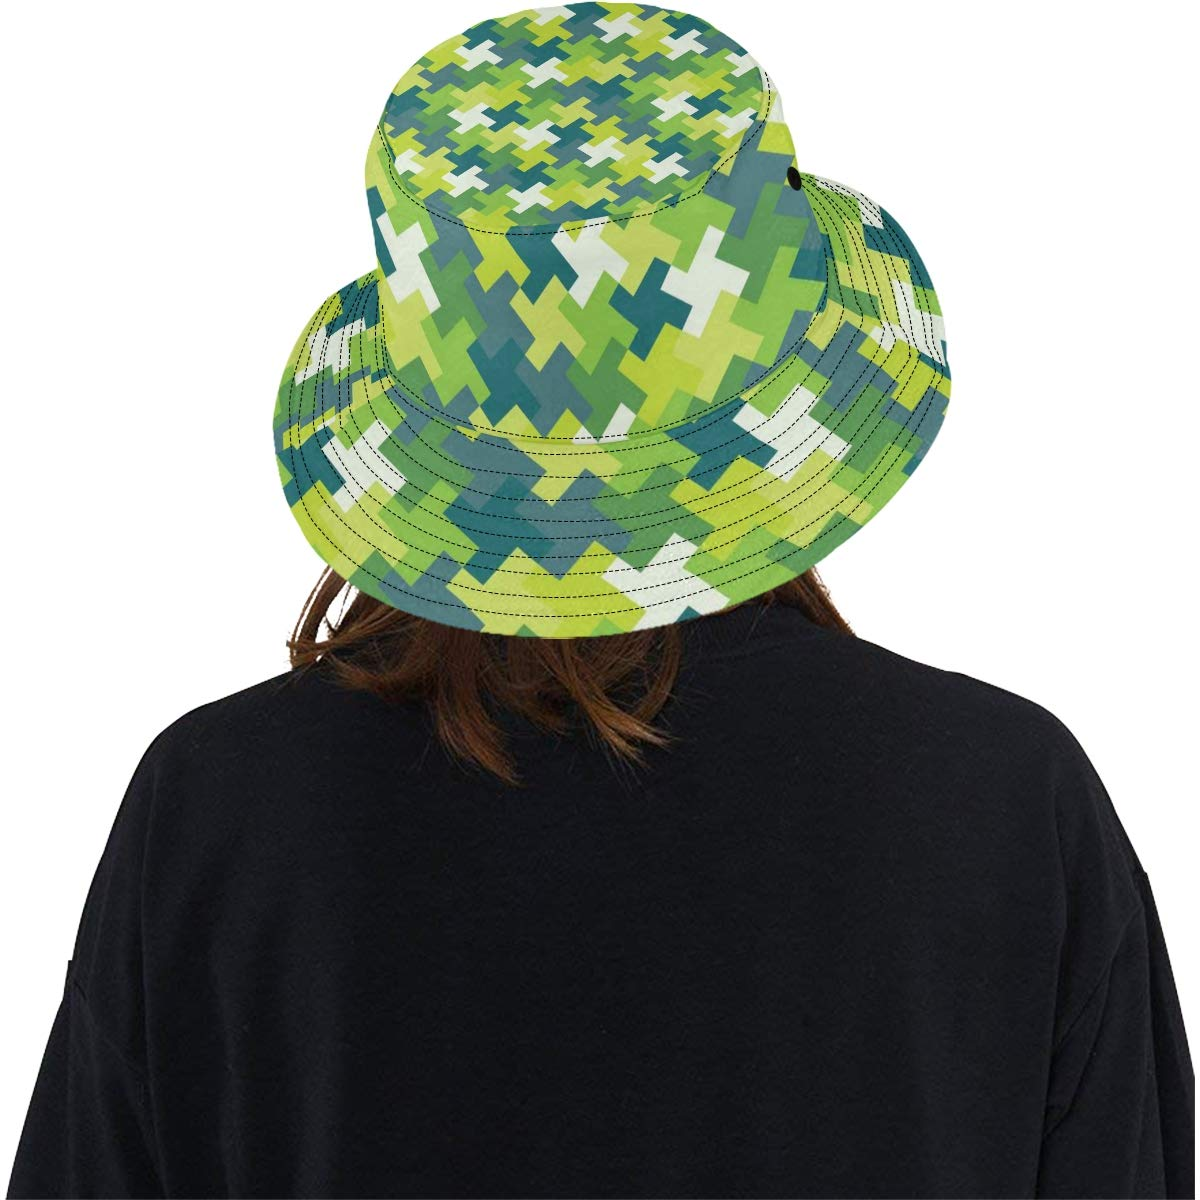 Difficult Endless Jigsaw Puzzle Pieces New Summer Unisex Cotton Fashion Fishing Sun Bucket Hats for Kid Teens Women and Men with Customize Top Packable Fisherman Cap for Outdoor Travel